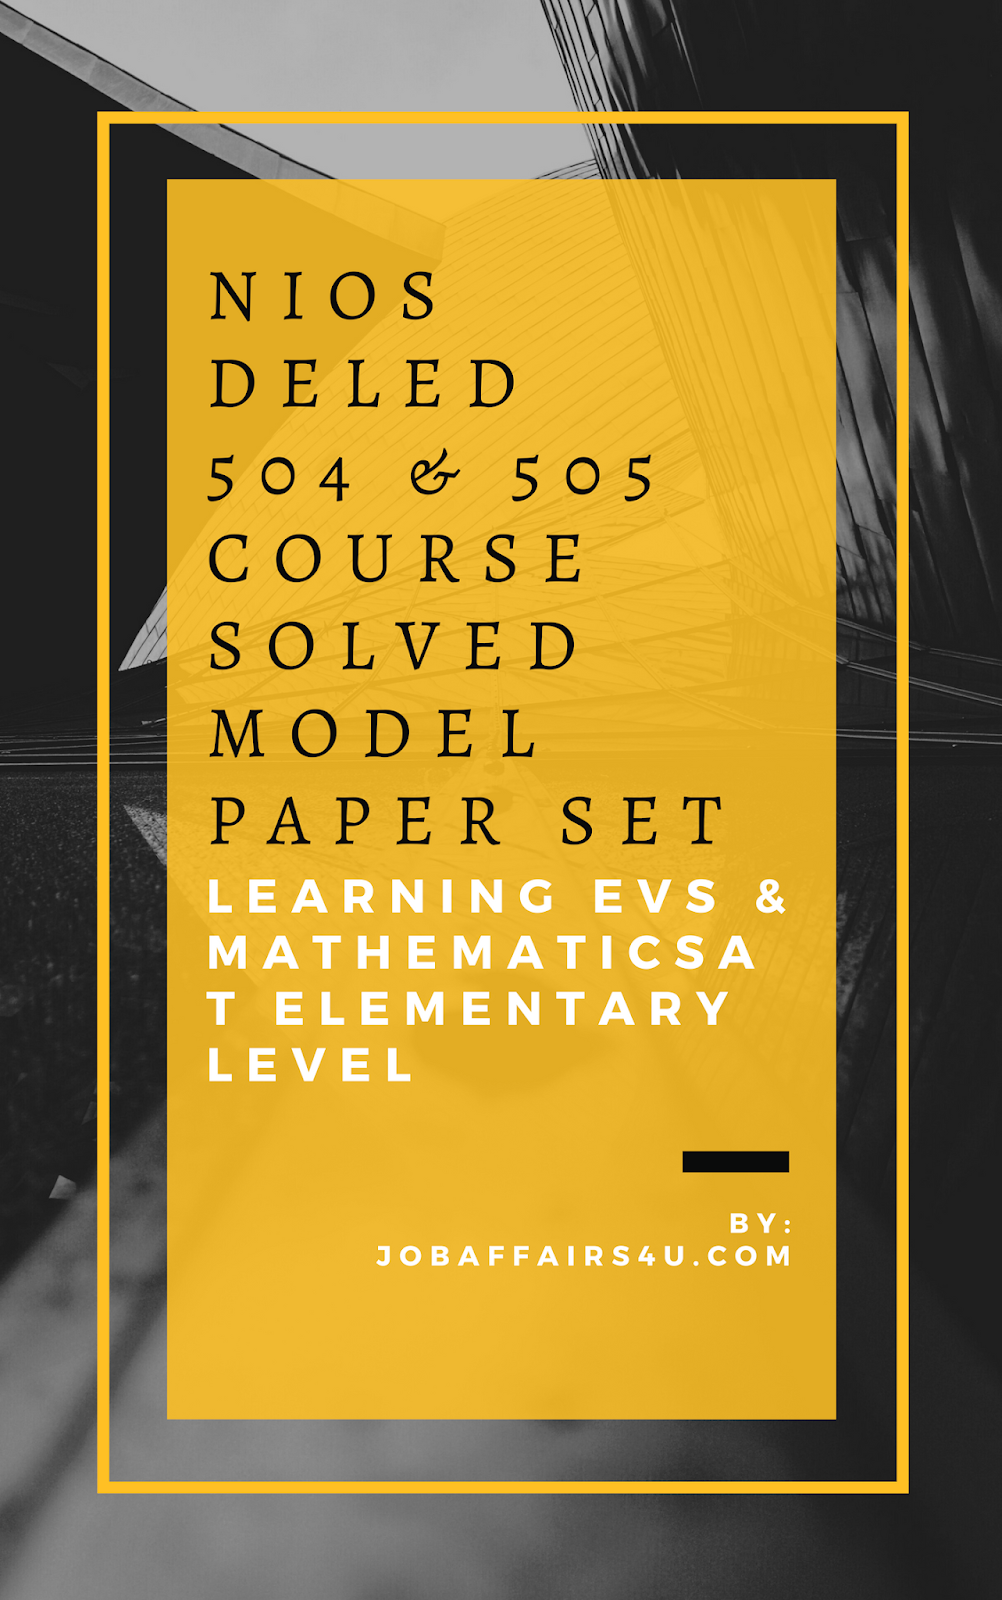 fully solved nios deled previous year question paper pdf download